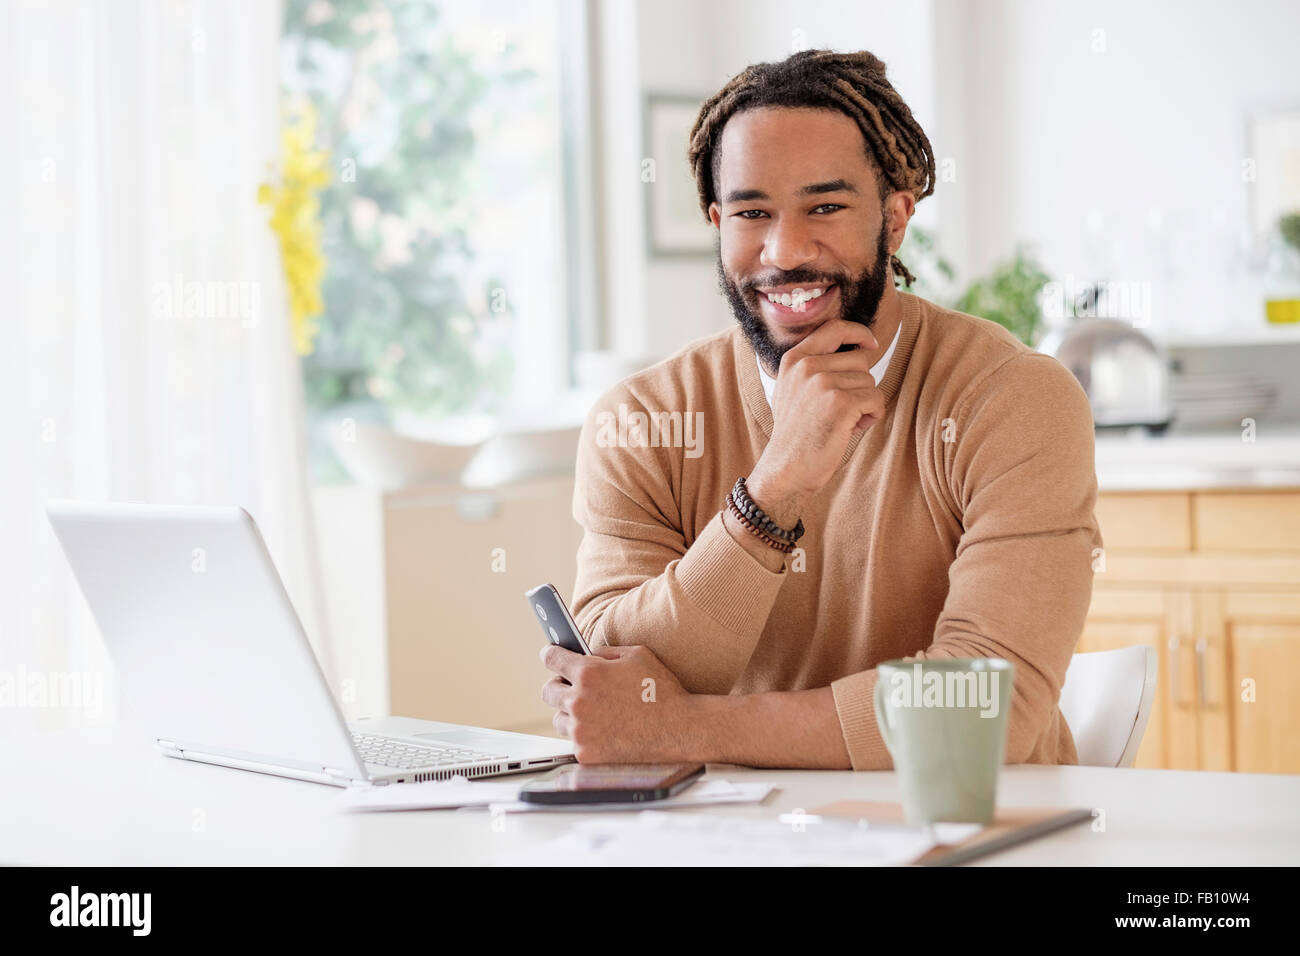 Portrait de jeune homme smiley avec laptop Photo Stock